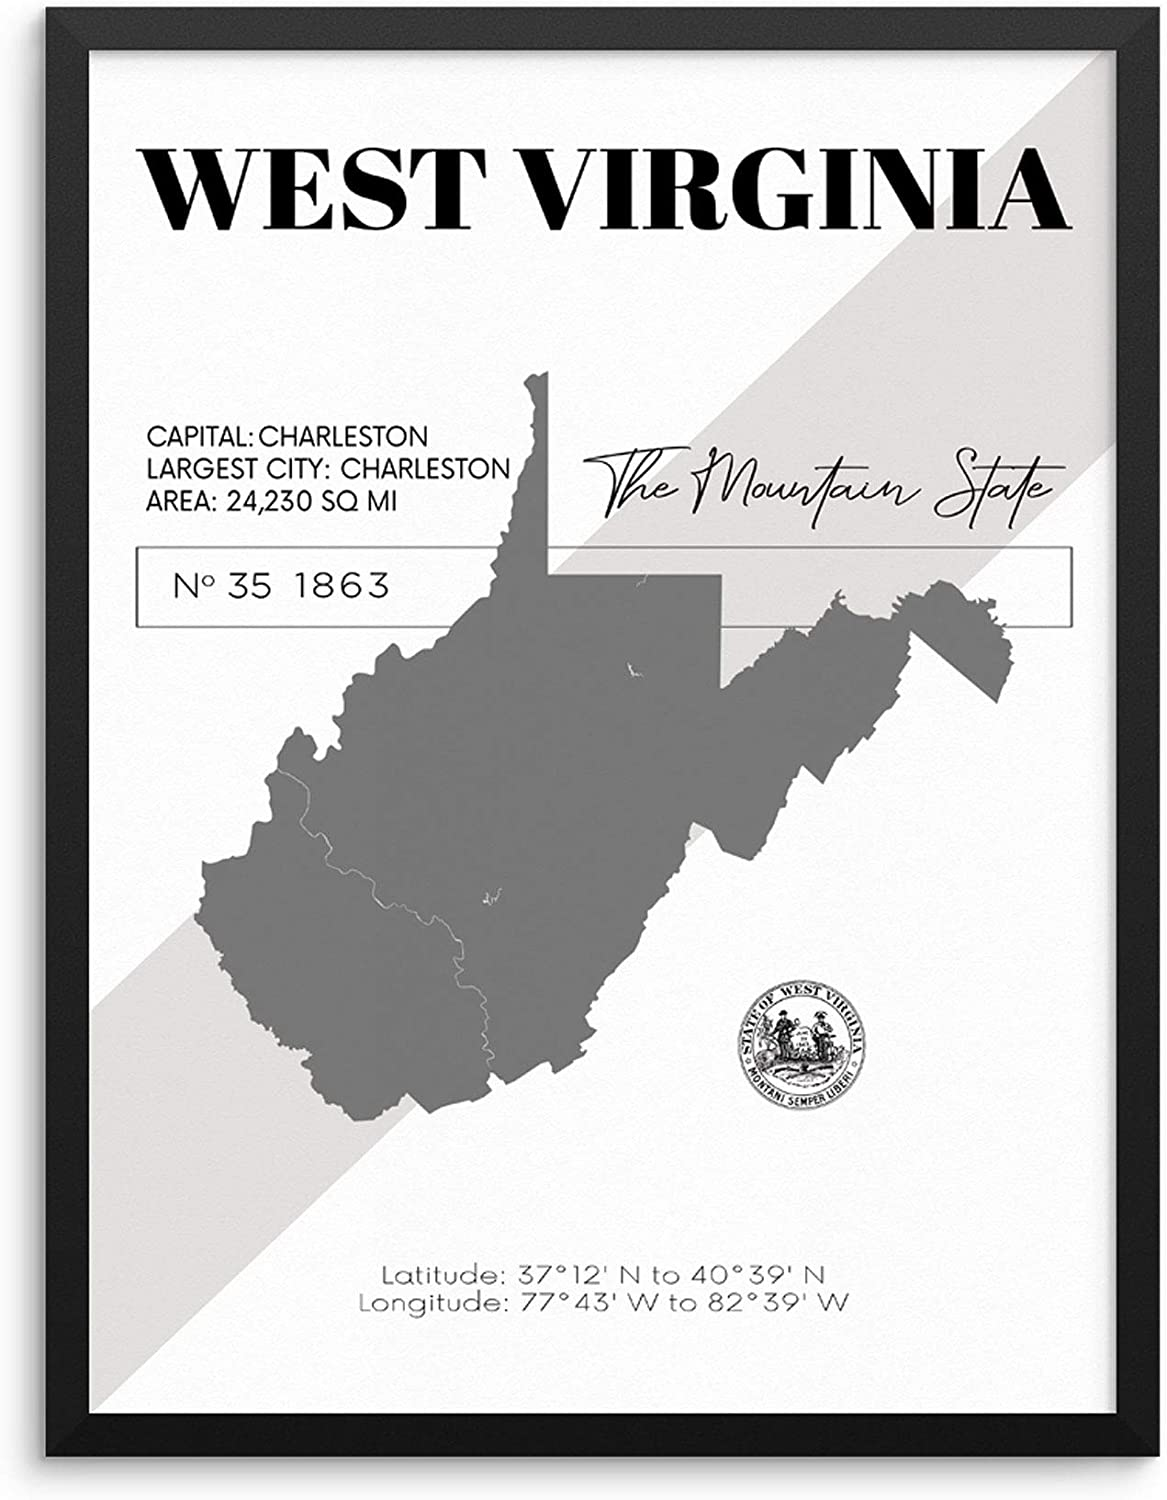 West Virginia State Map Poster With Demographics Minimalist Home Decor  Travel Art Print 20x20 UNFRAMED Trendy Artwork for Bedroom Living Room  Entryway ...